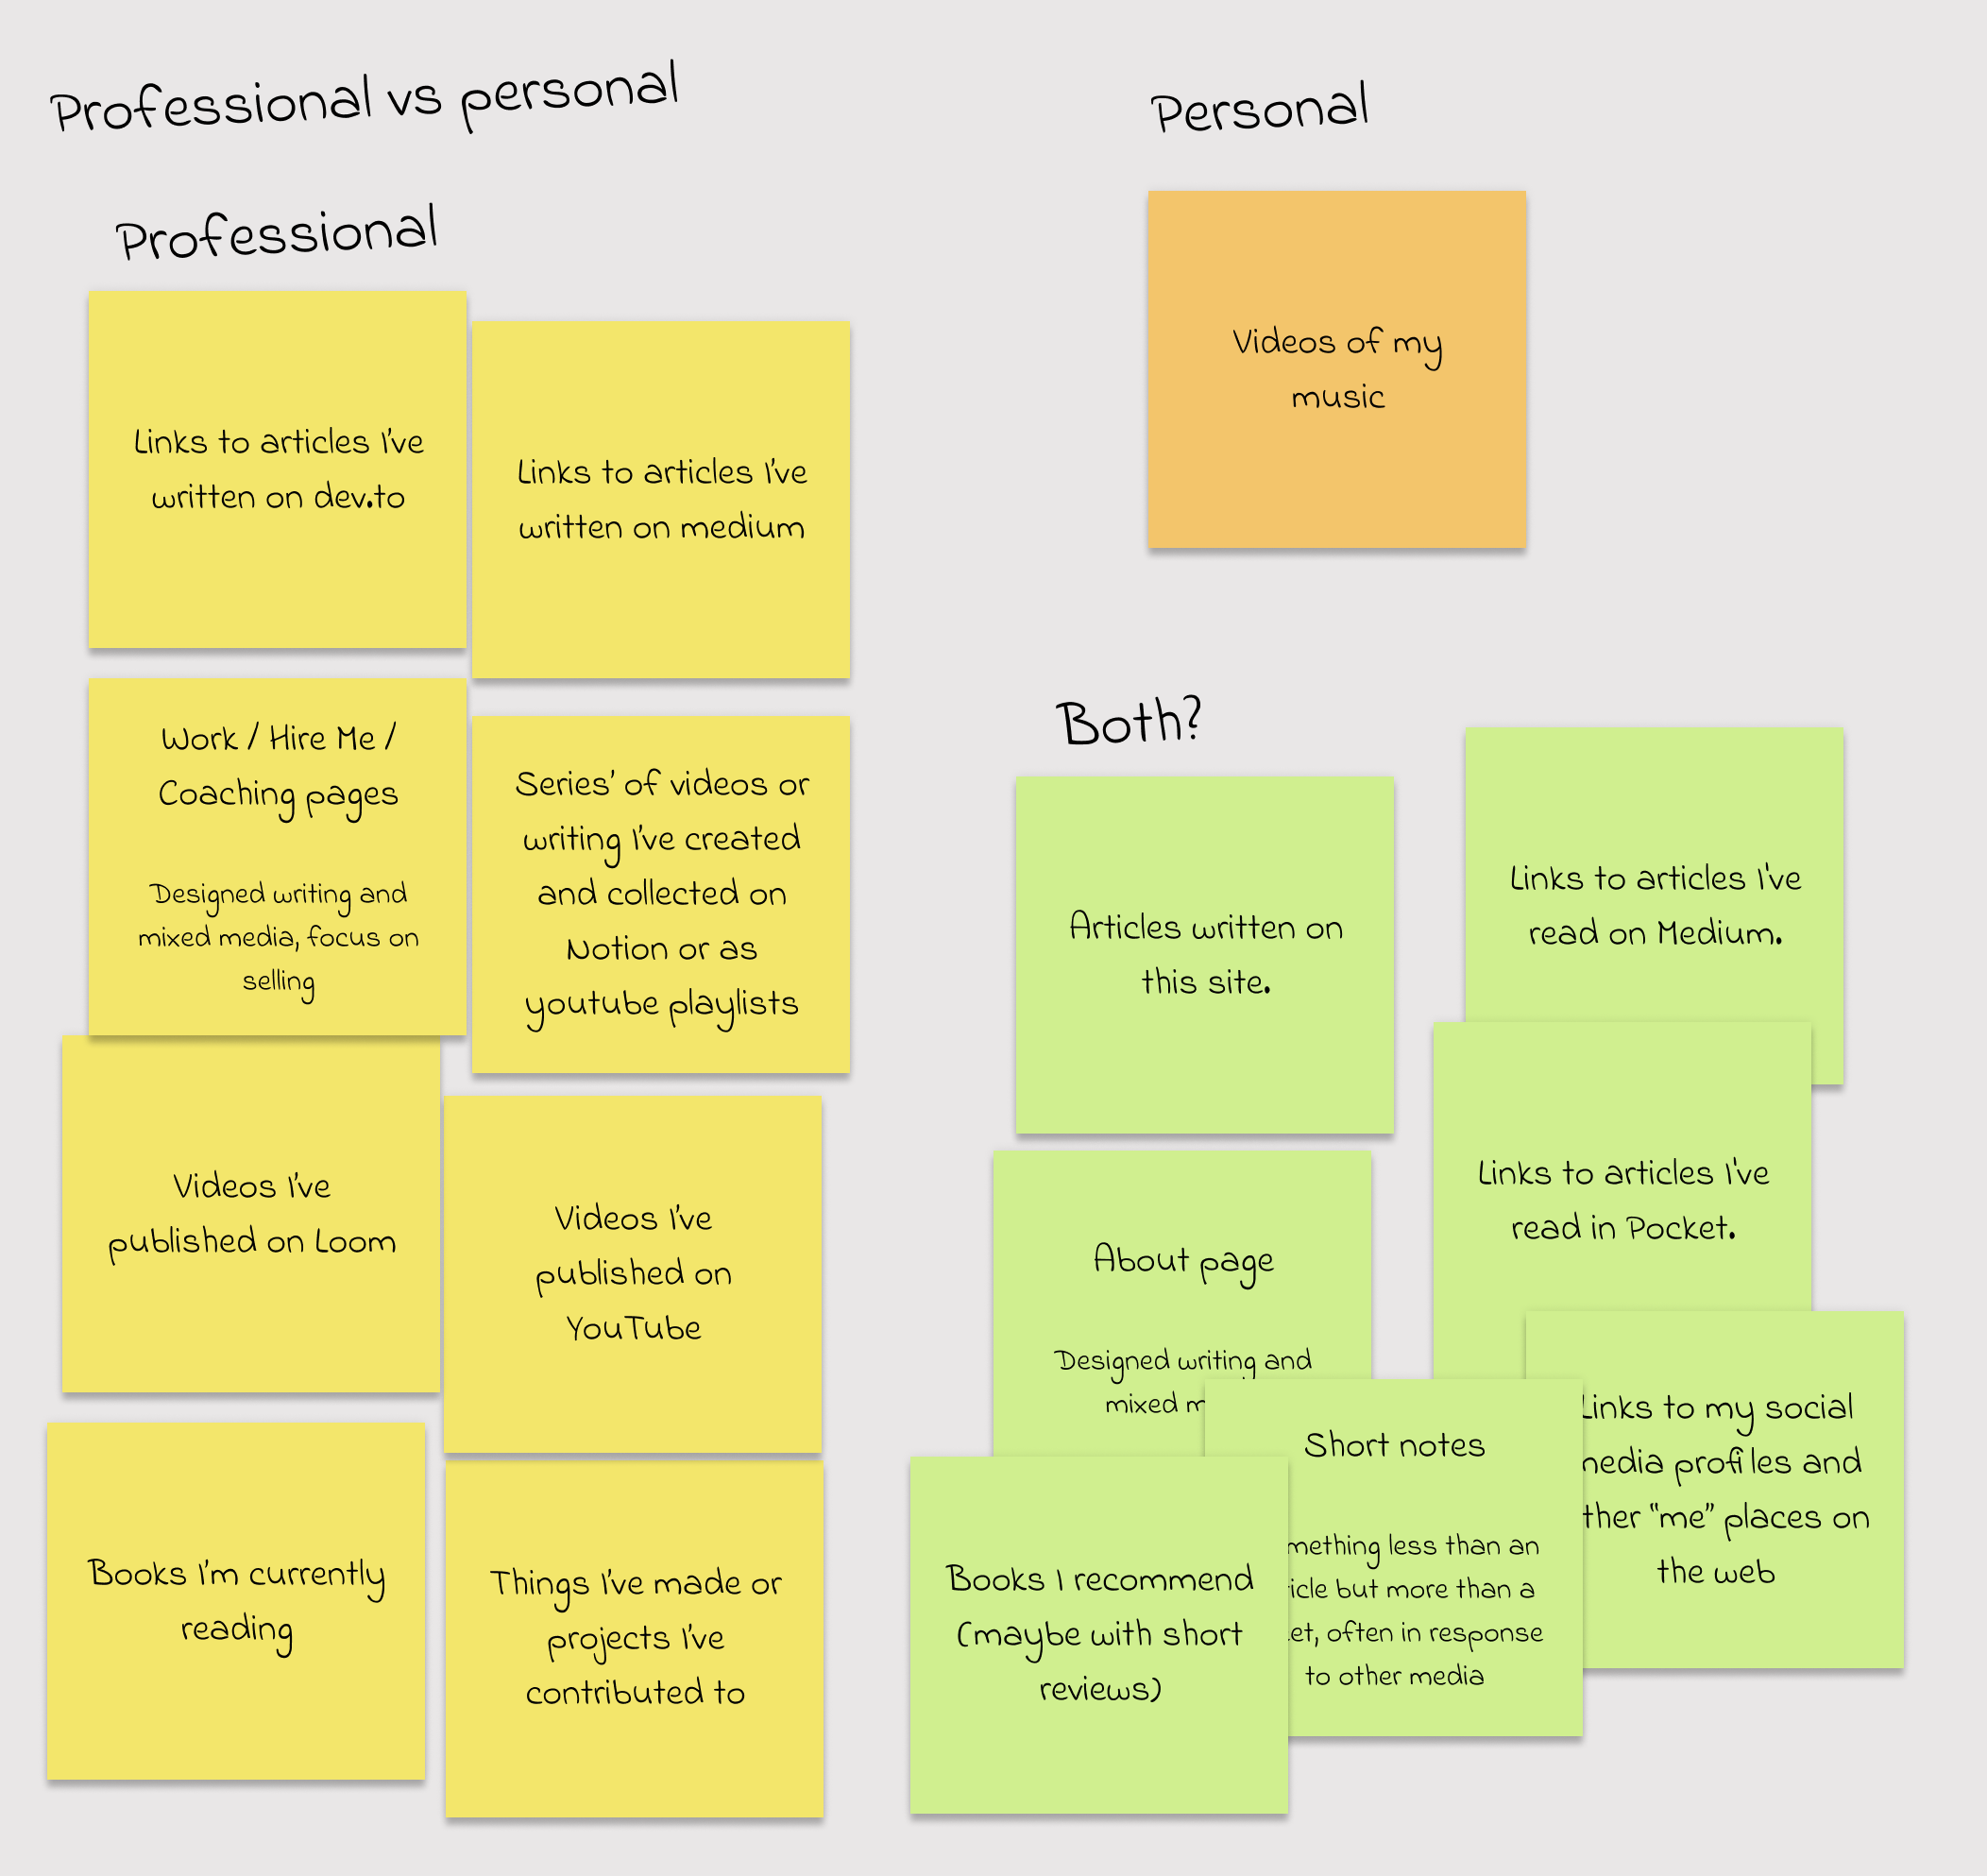 Post-it notes of content audit - by professional or personal